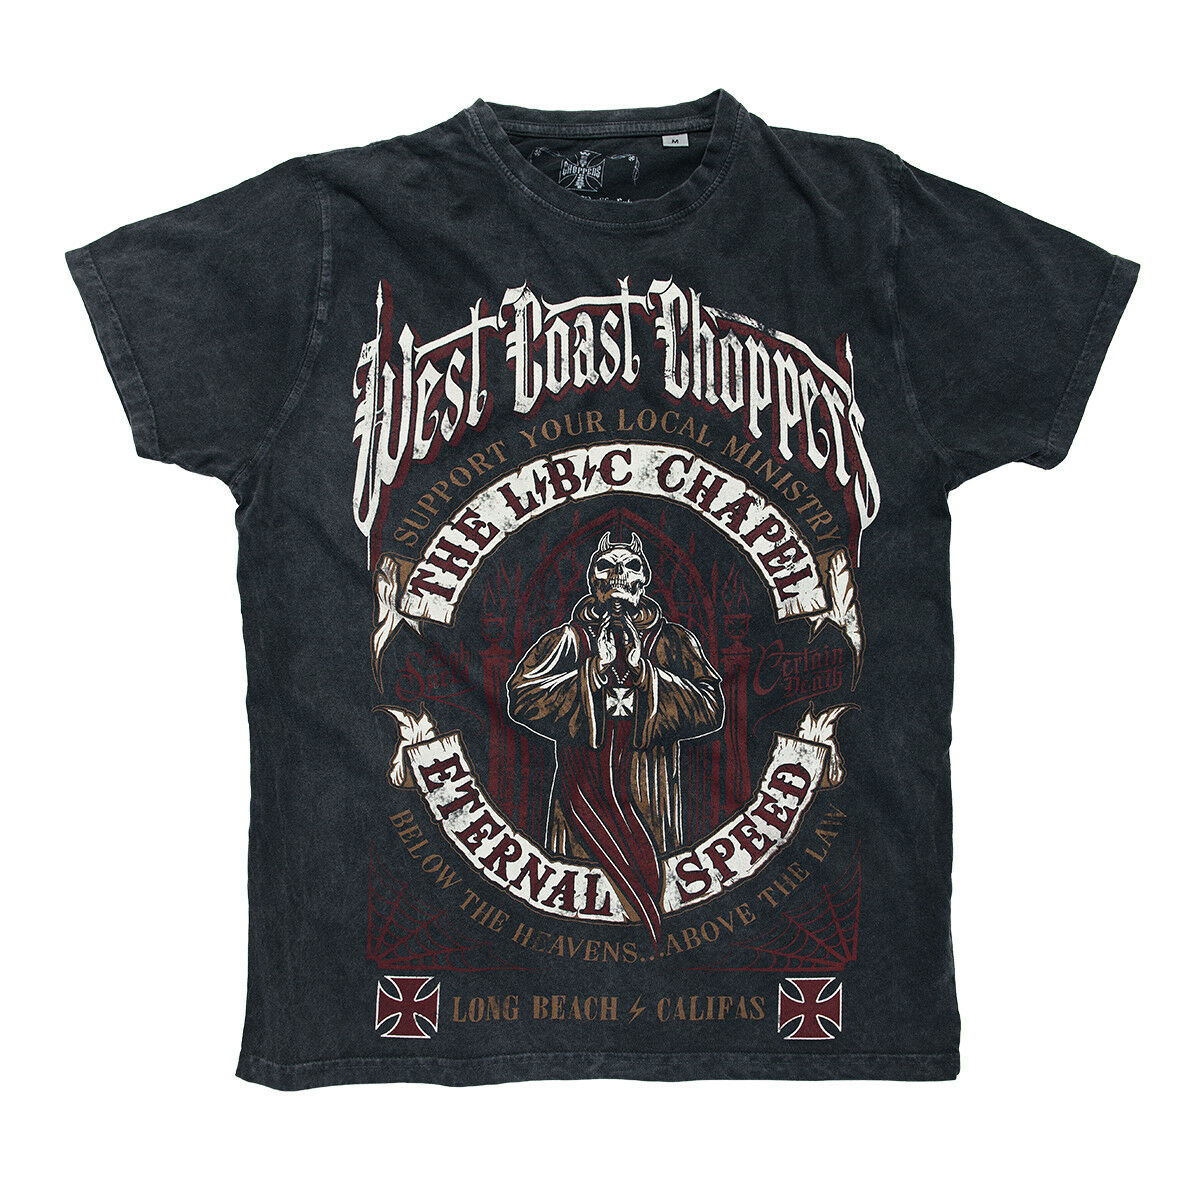 West Coast Choppers vintage T-Shirt Hommes The Chapel Anthracite vintage Choppers S à 3xl Neuf 3db966